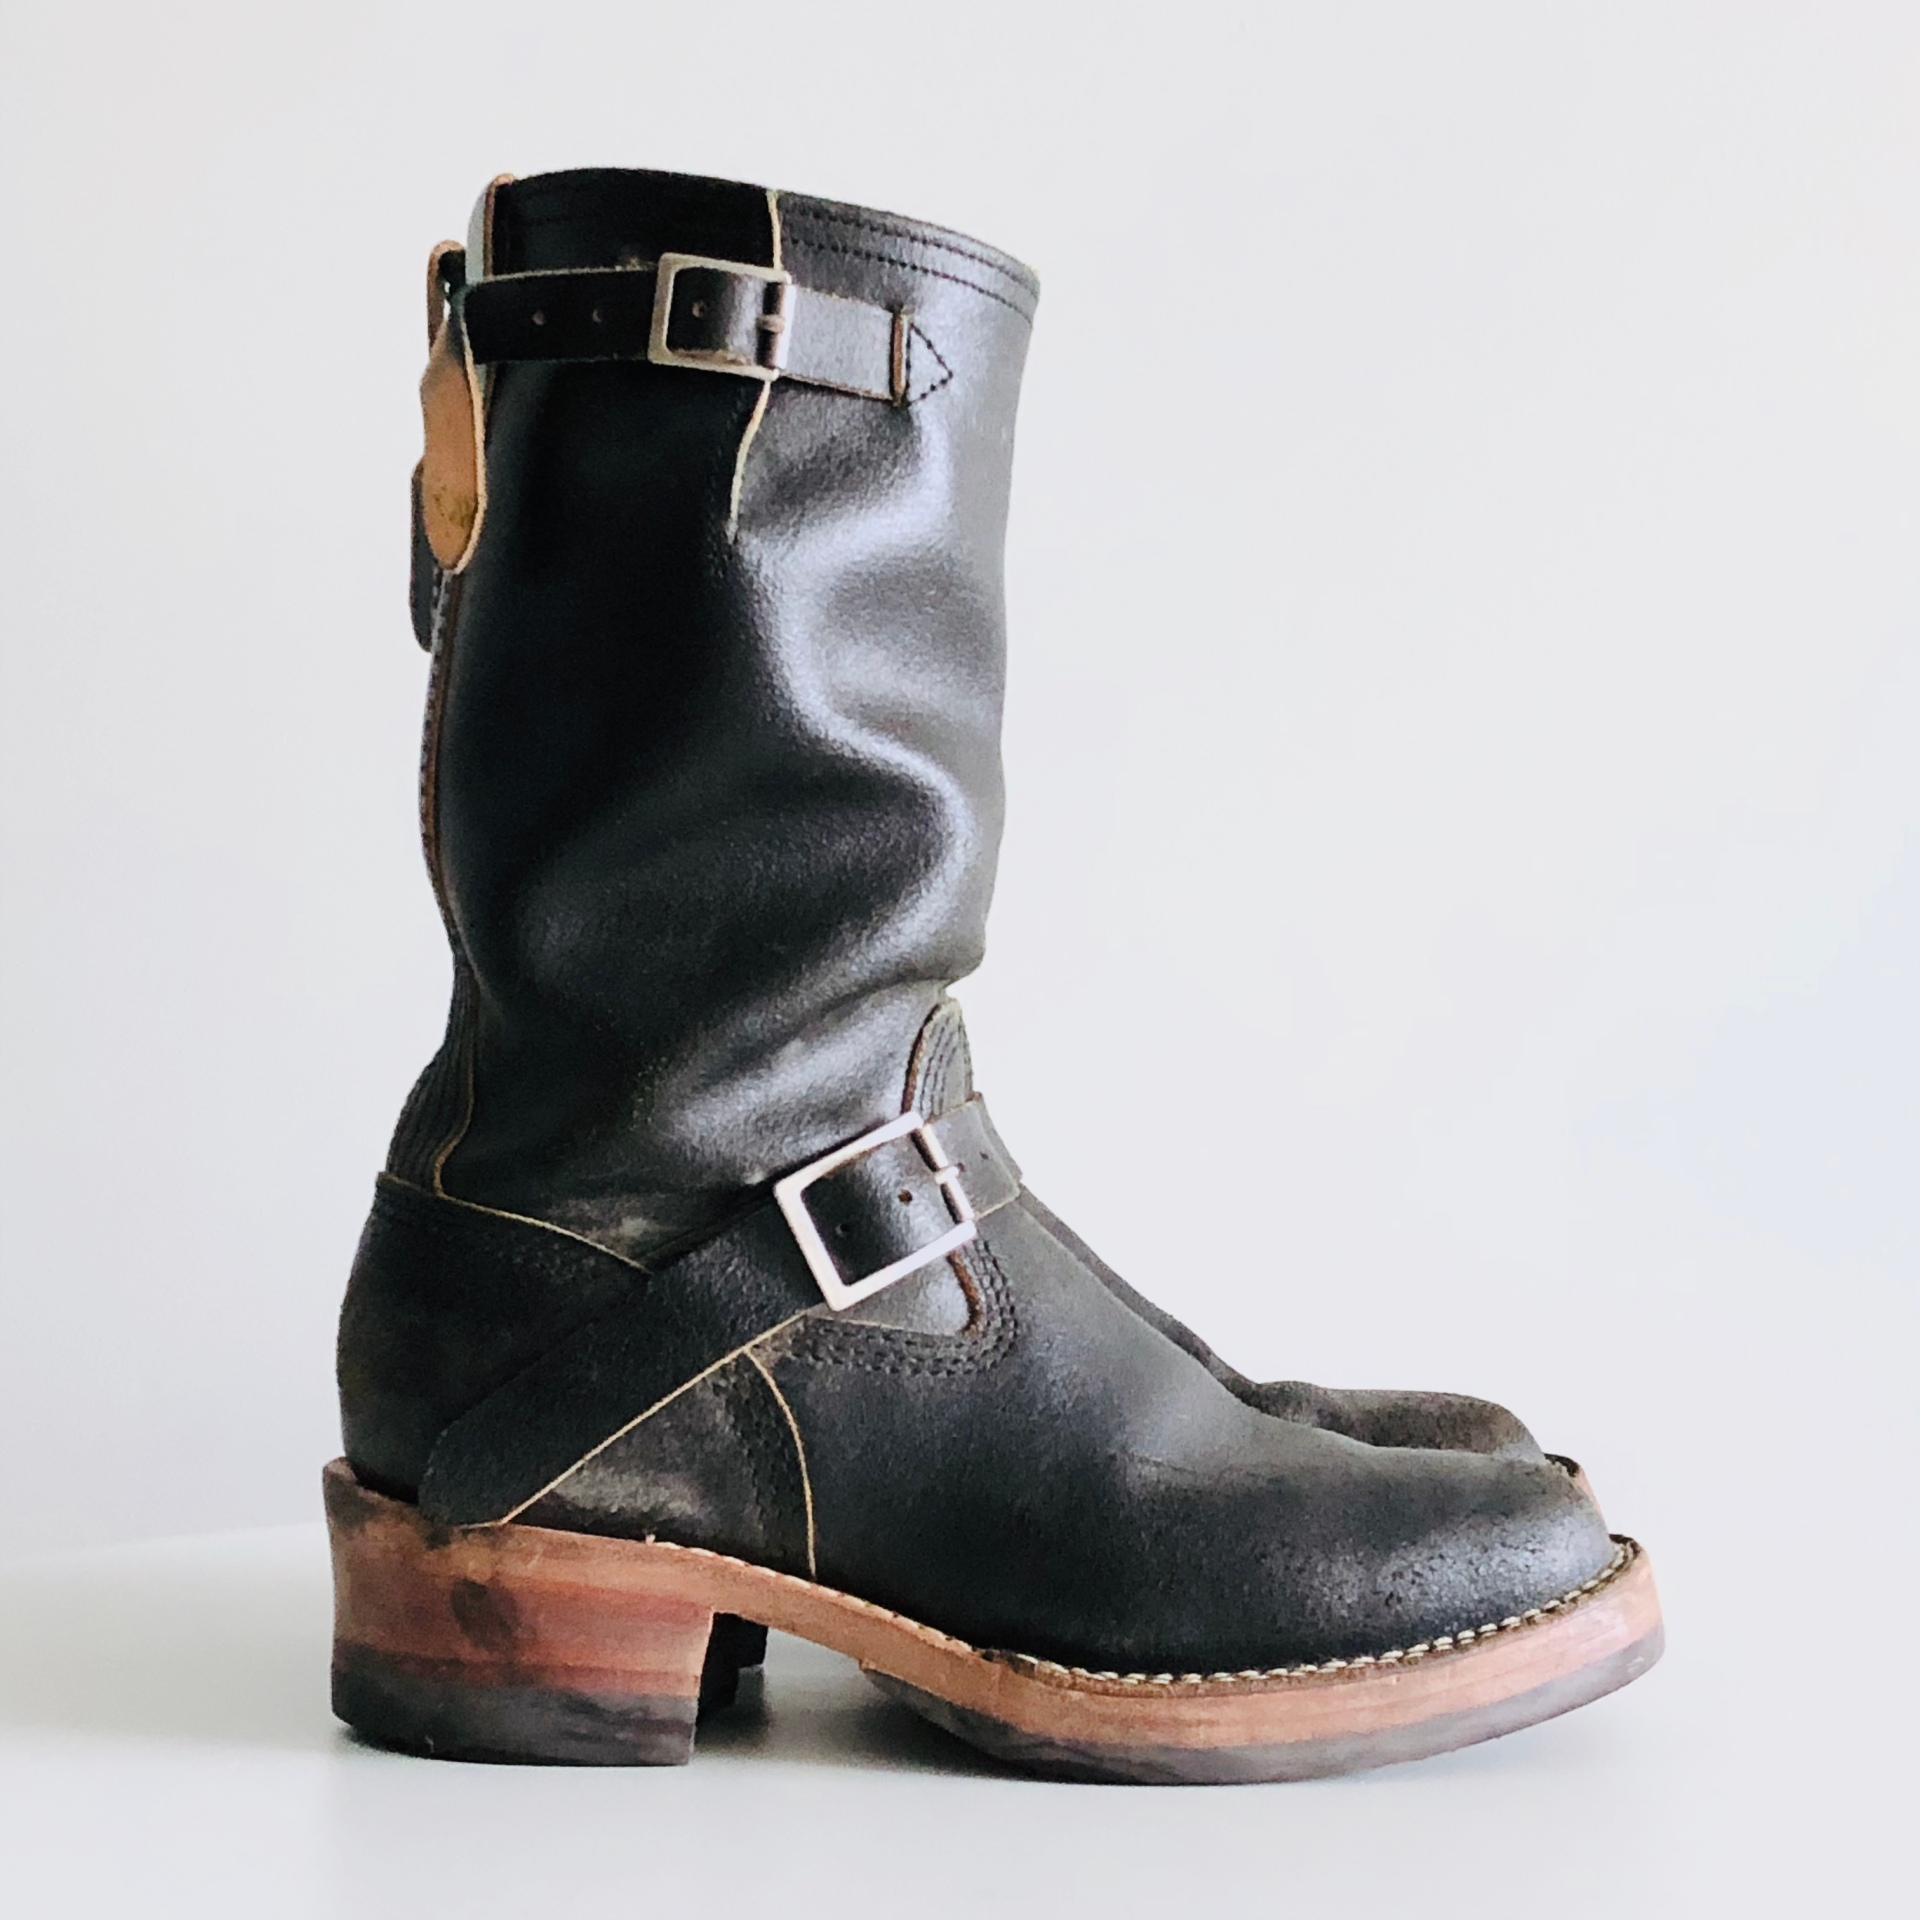 Wesco Knuckle Dragger Engineer boot